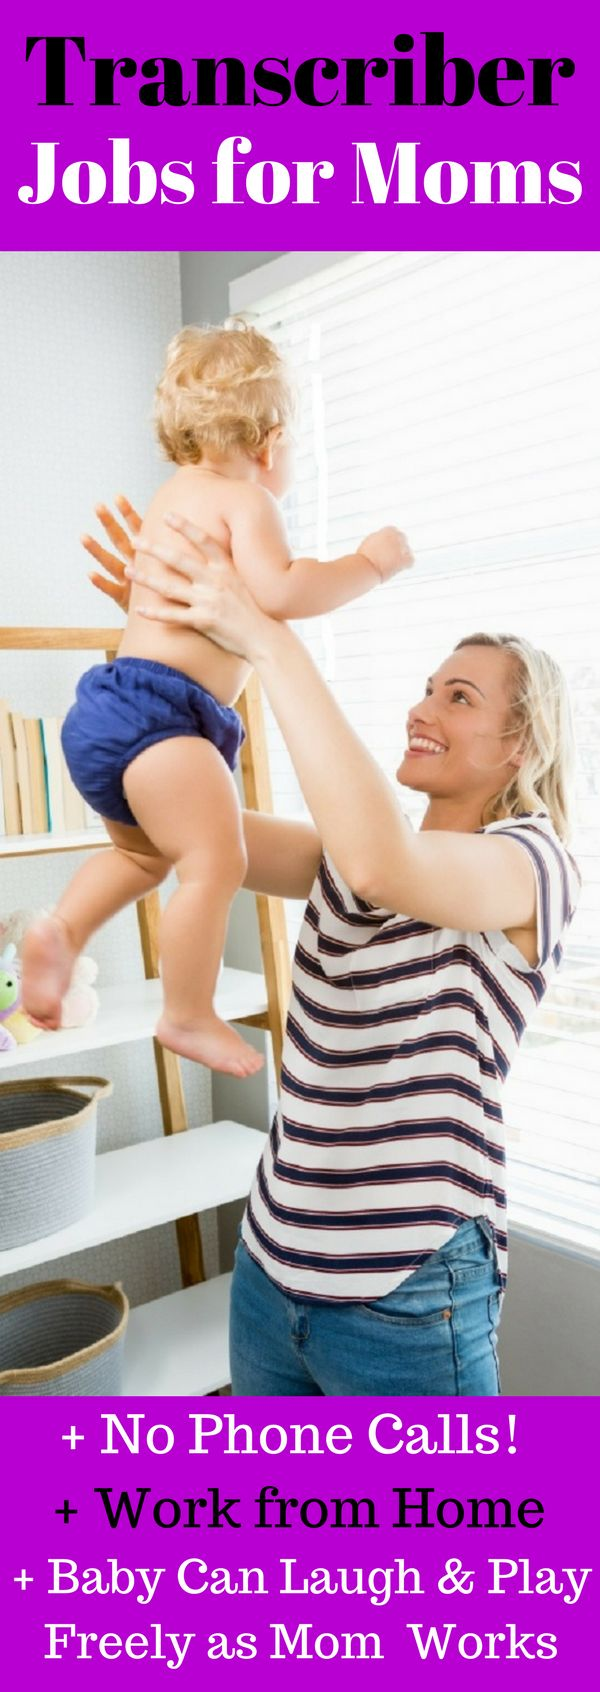 Non-Phone Work from Home Jobs. Non-Phone Work from Home Jobs for Stay at Home Moms and Dads. Be FREE and FLEXIBLE at Home and Still Make Extra Money. This is the Best Non-Phone, Transcriber or Transcription Job for Stay at Home Moms and Dads